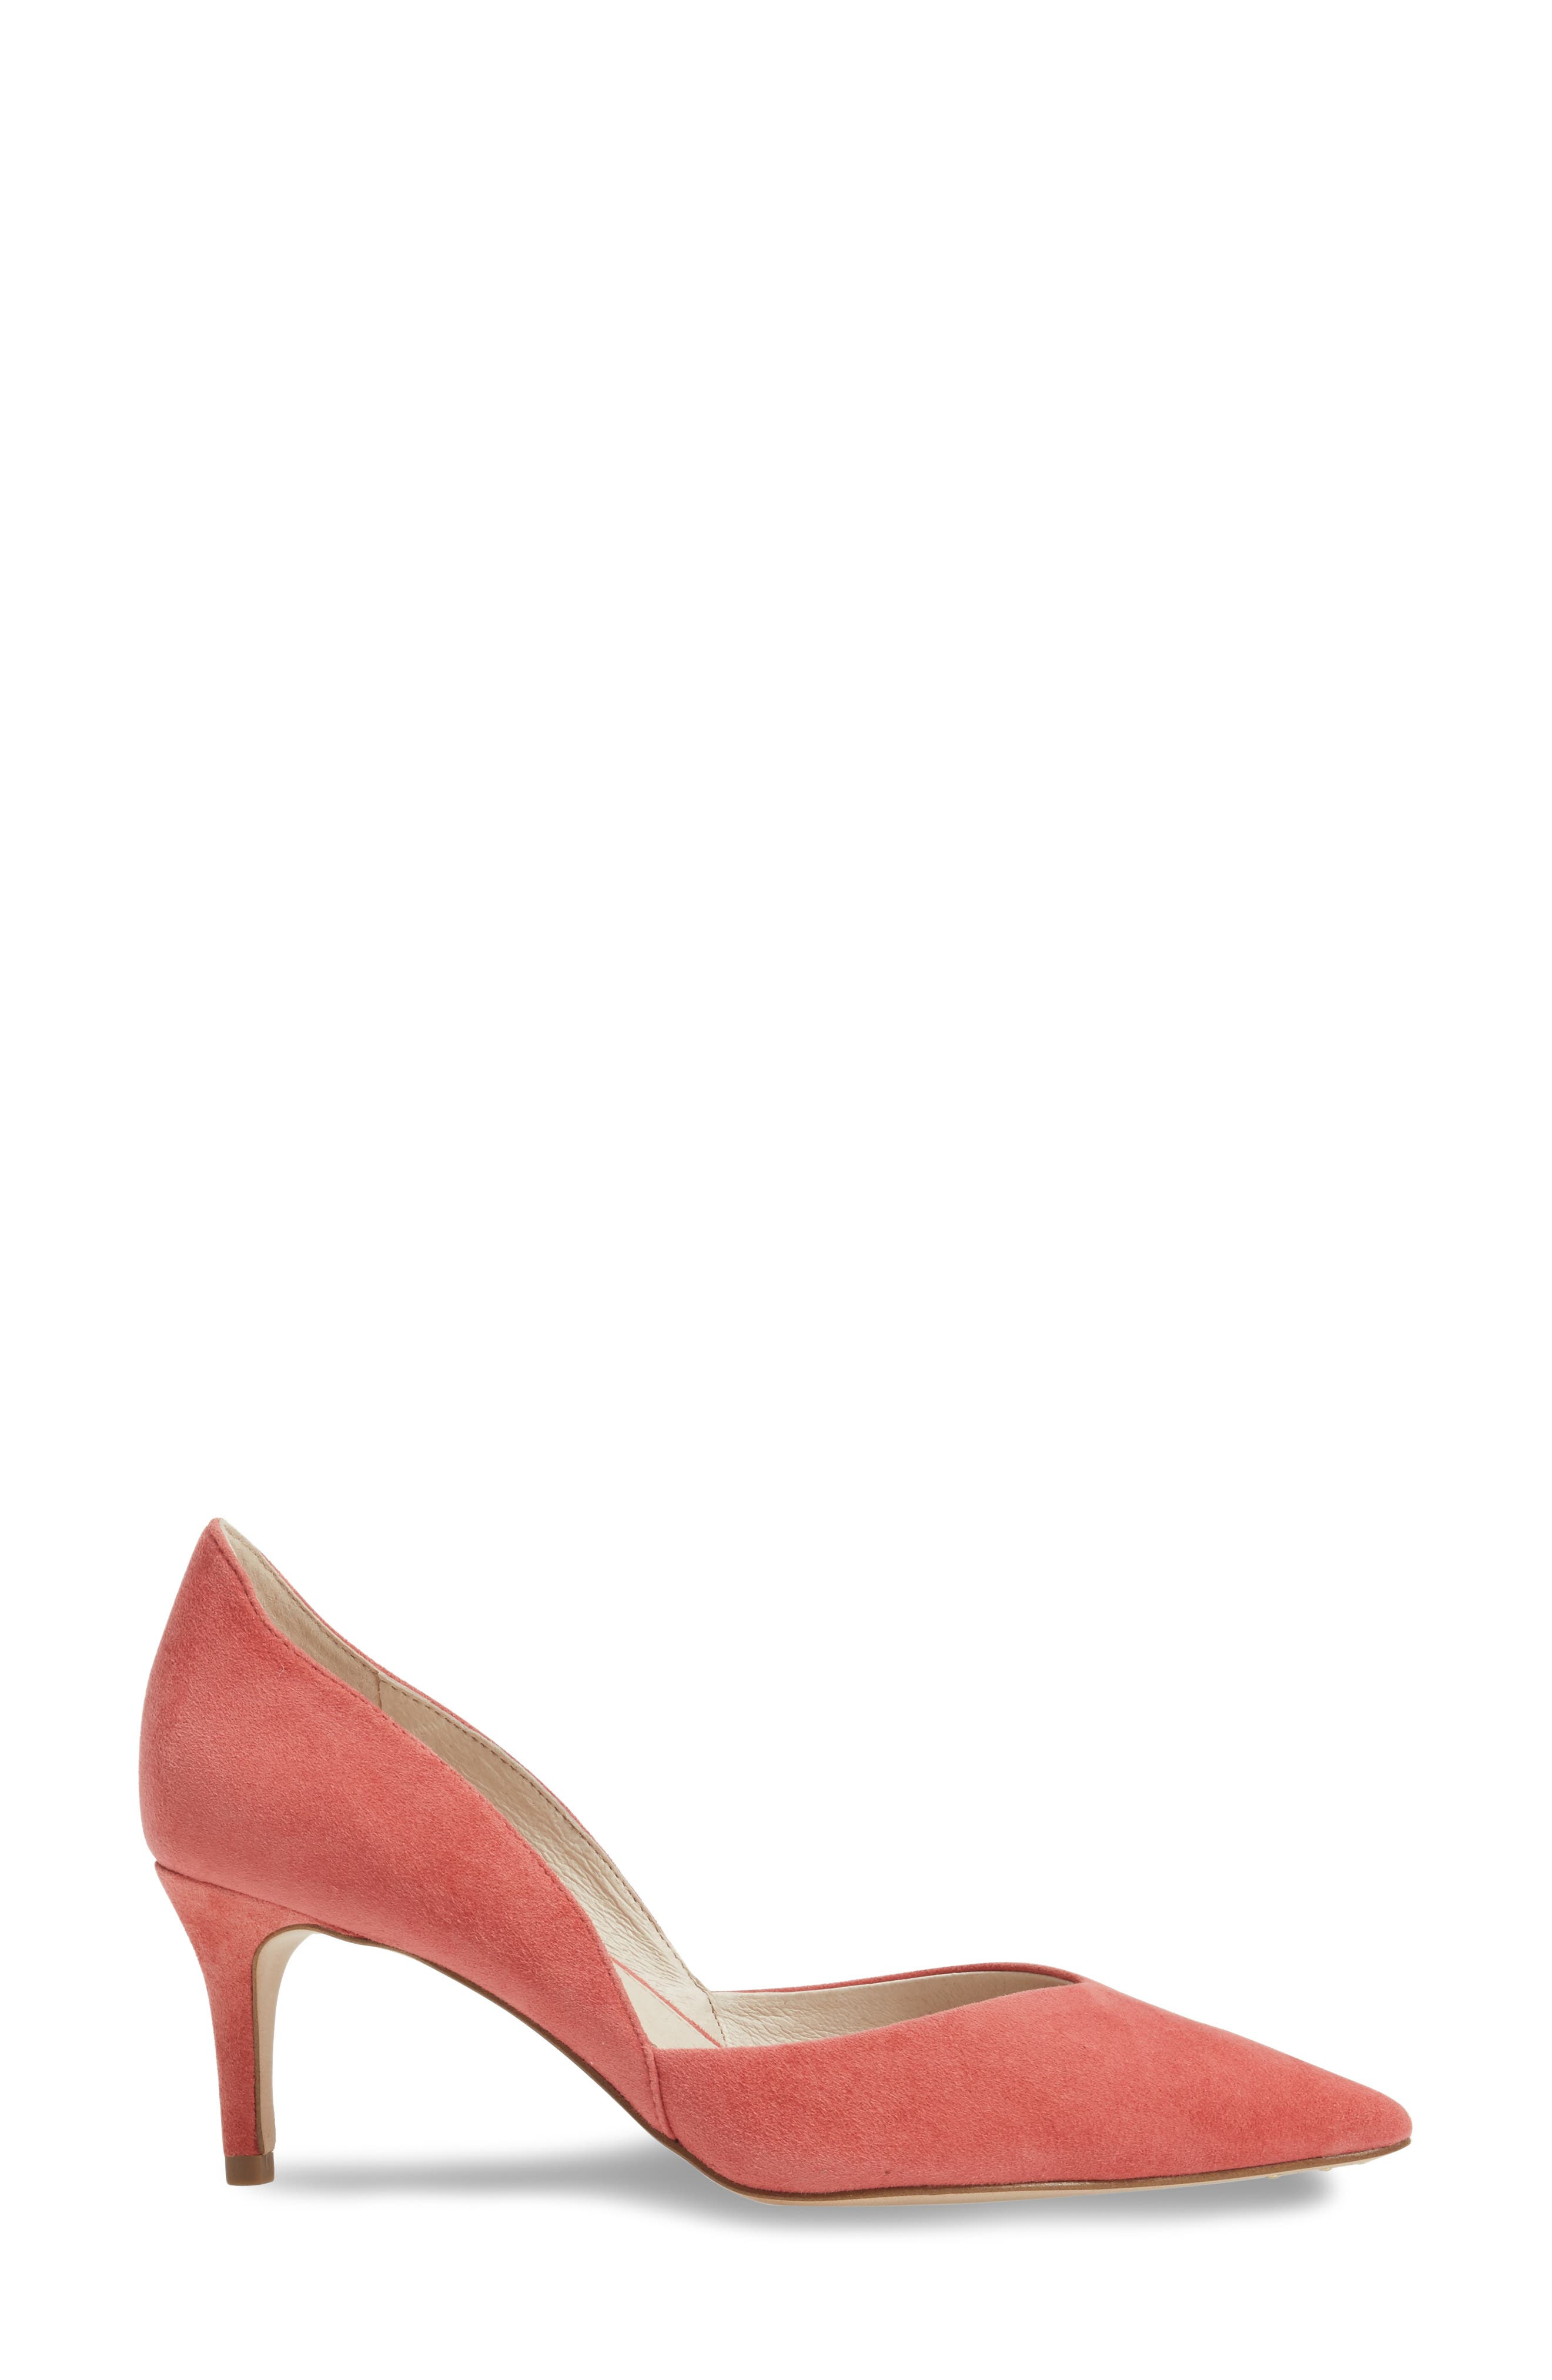 Alternate Image 3  - Louise et Cie Jacee Pointy Toe Pump (Women)